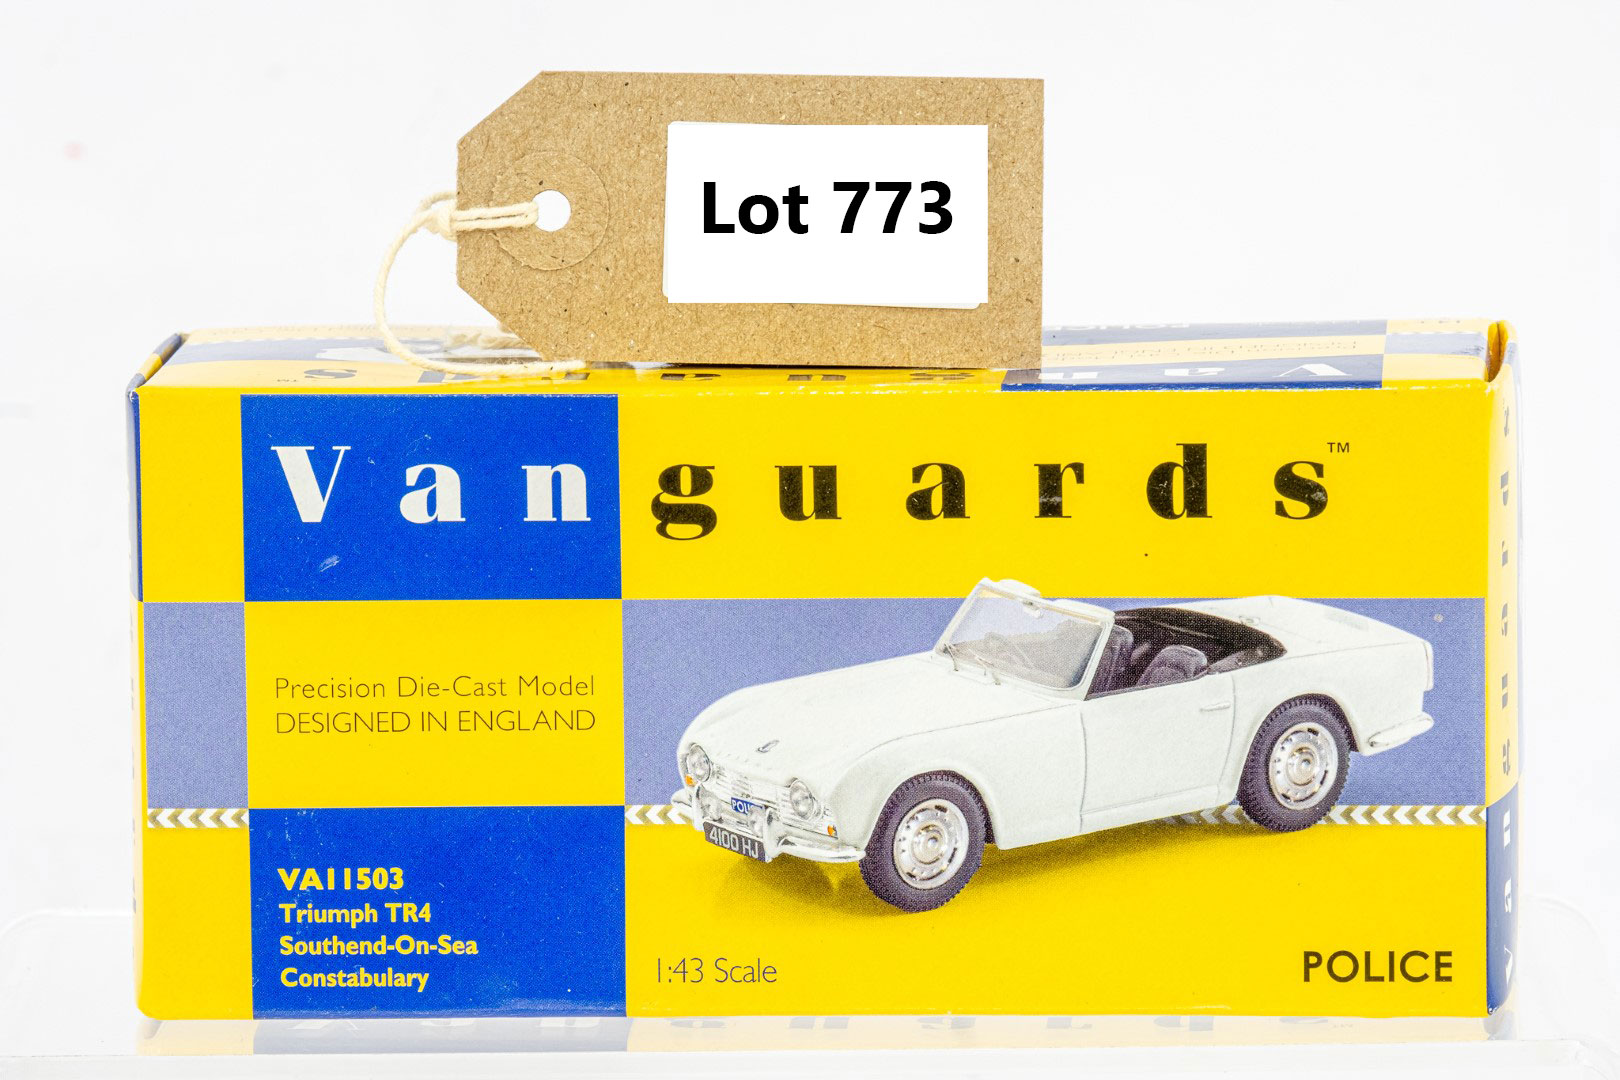 Vanguards Triumph TR4 - Southend On Sea Constabulary